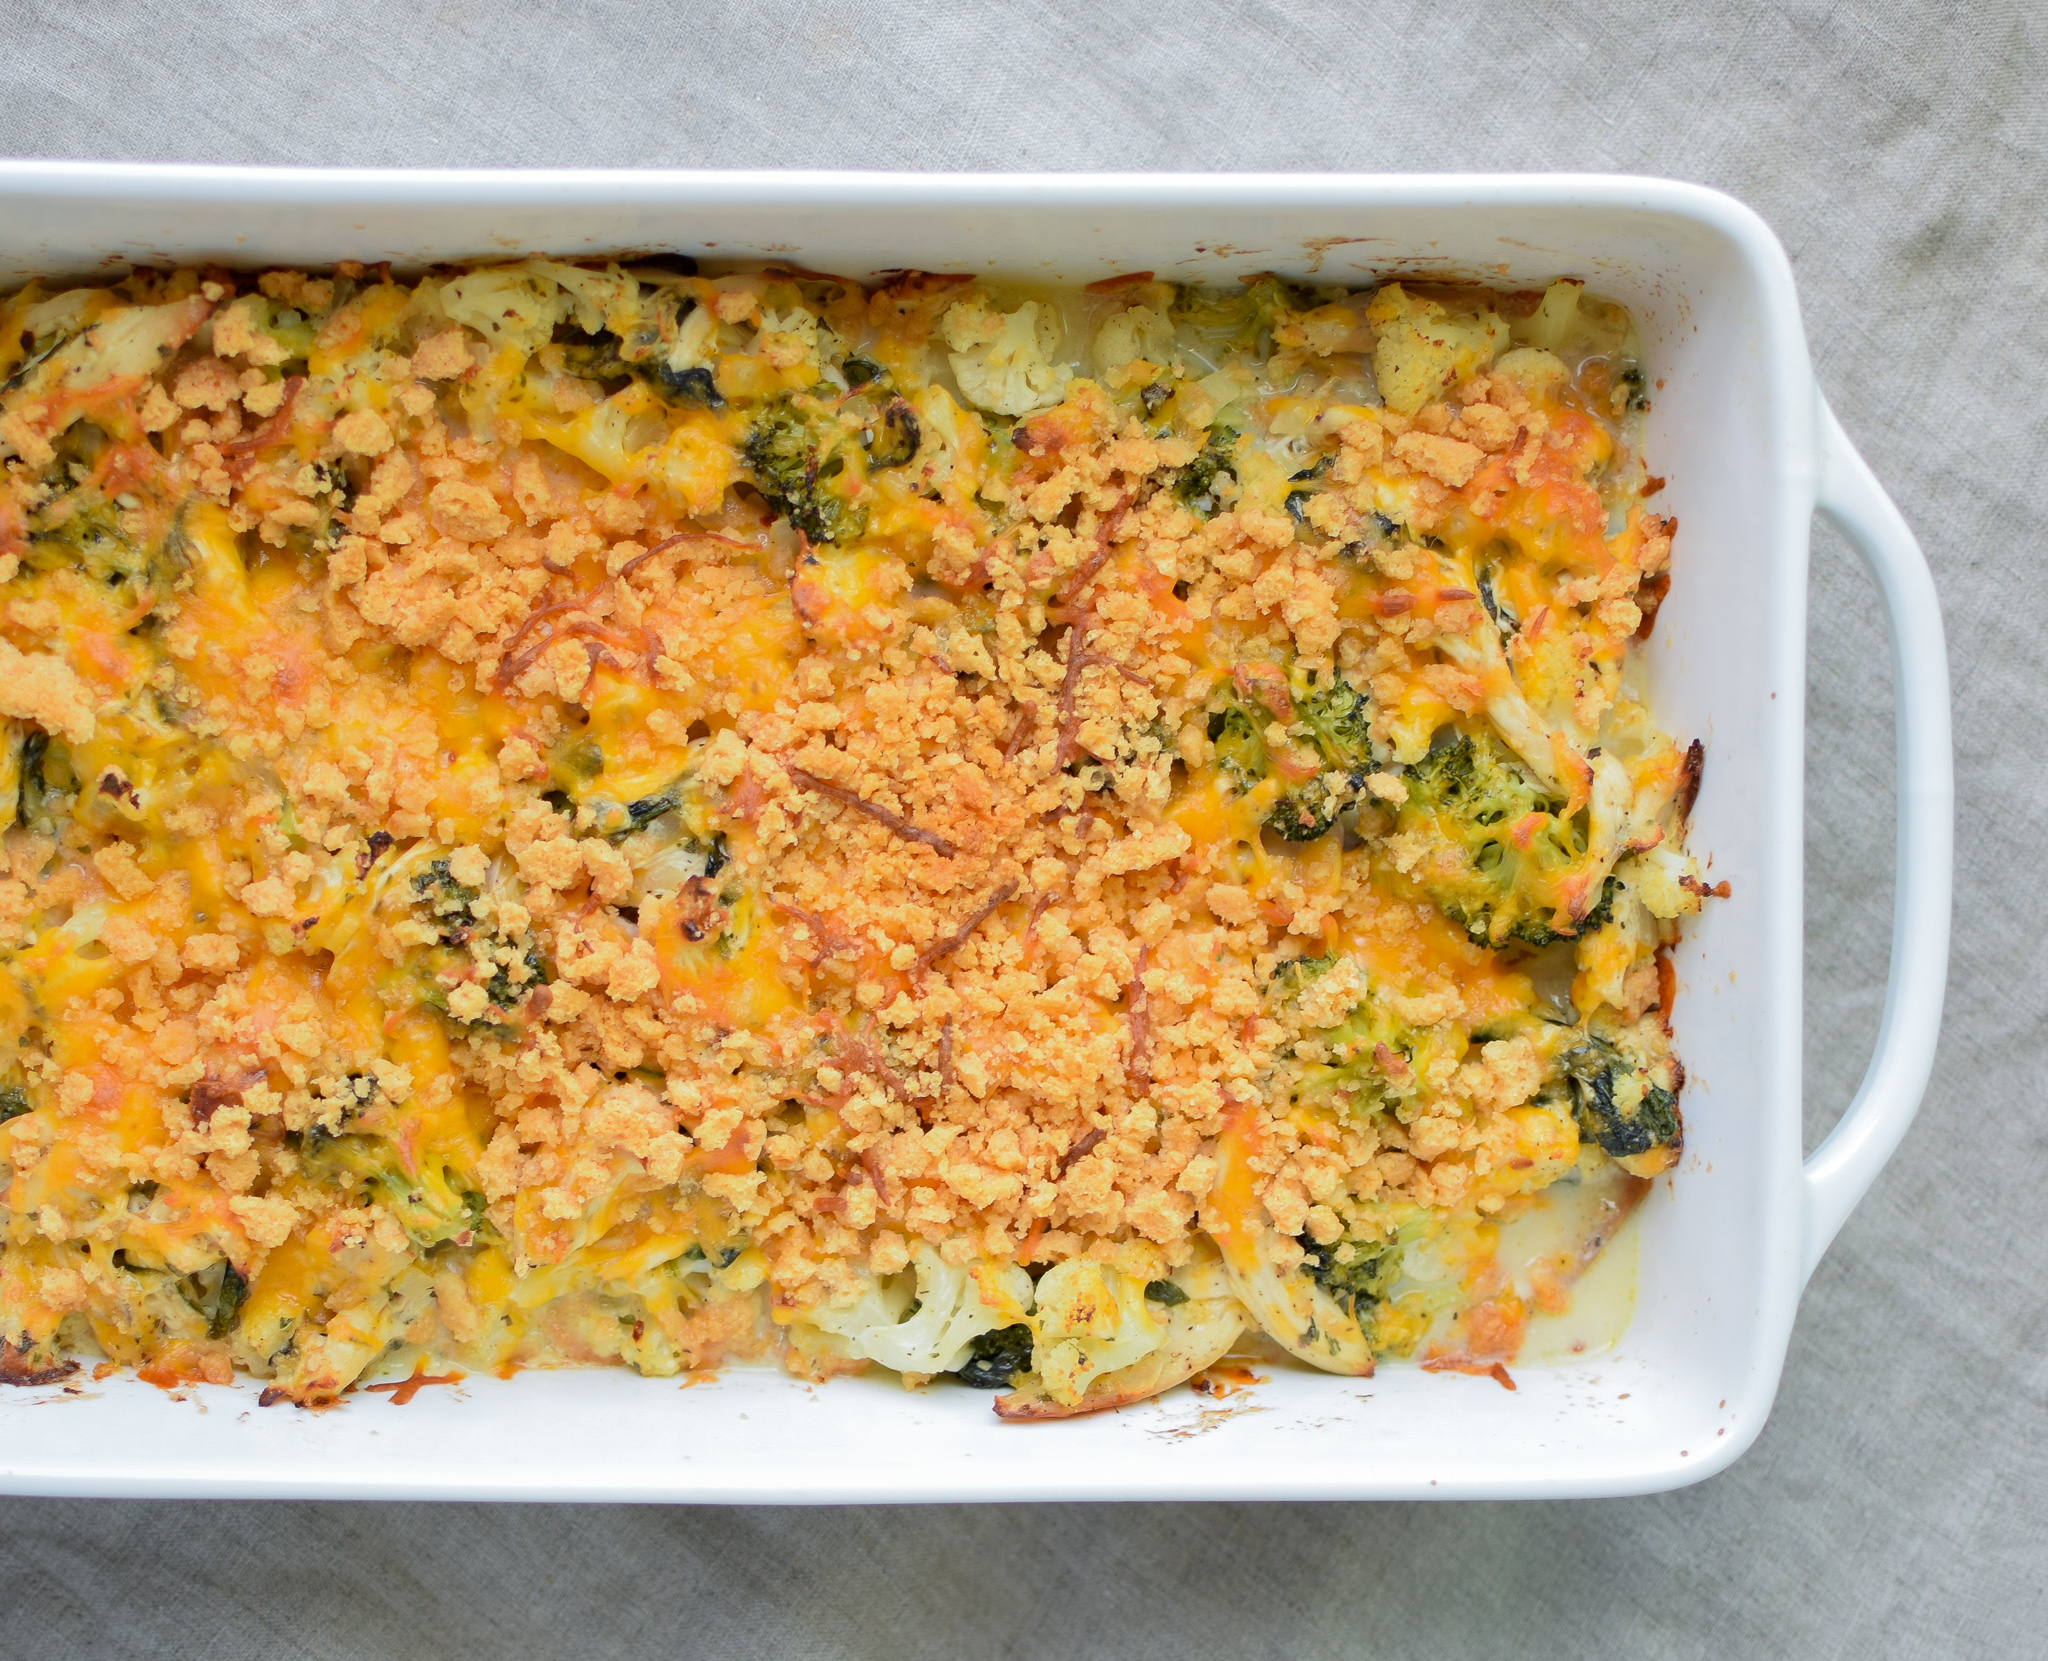 Dietary curd casserole in a microwave oven. Recipe